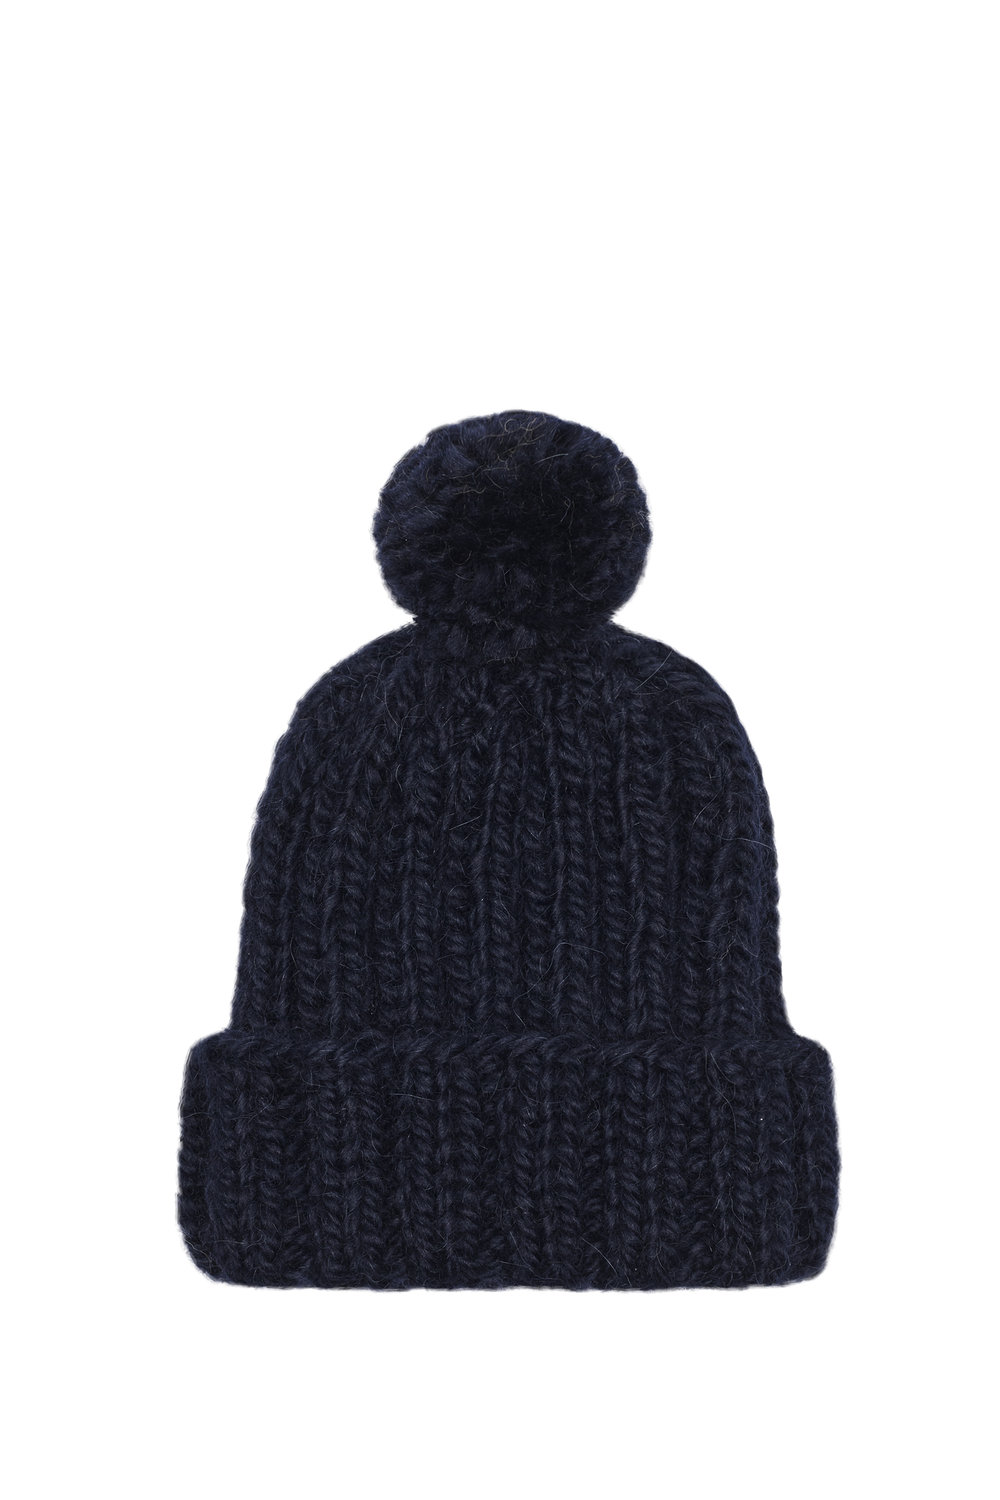 BABY POM POM   The Pacific   navy blue — Lynn   Lawrence  99eef12a701